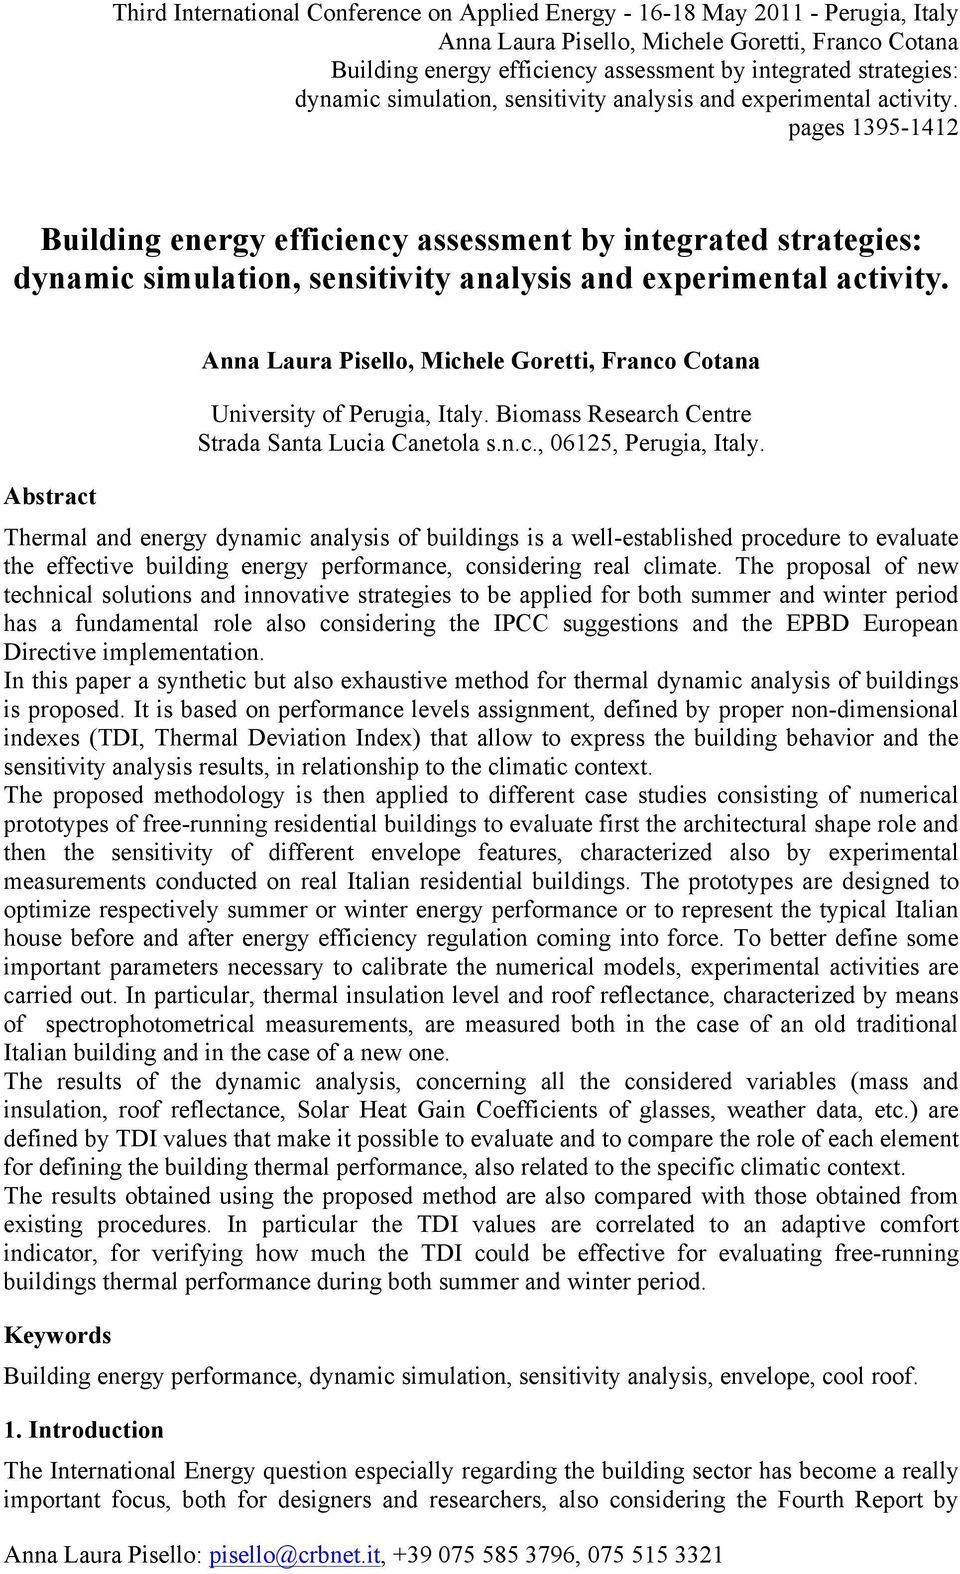 Abstract Anna Laura Pisello, Michele Goretti, Franco Cotana University of Perugia, Italy. Biomass Research Centre Strada Santa Lucia Canetola s.n.c., 06125, Perugia, Italy.